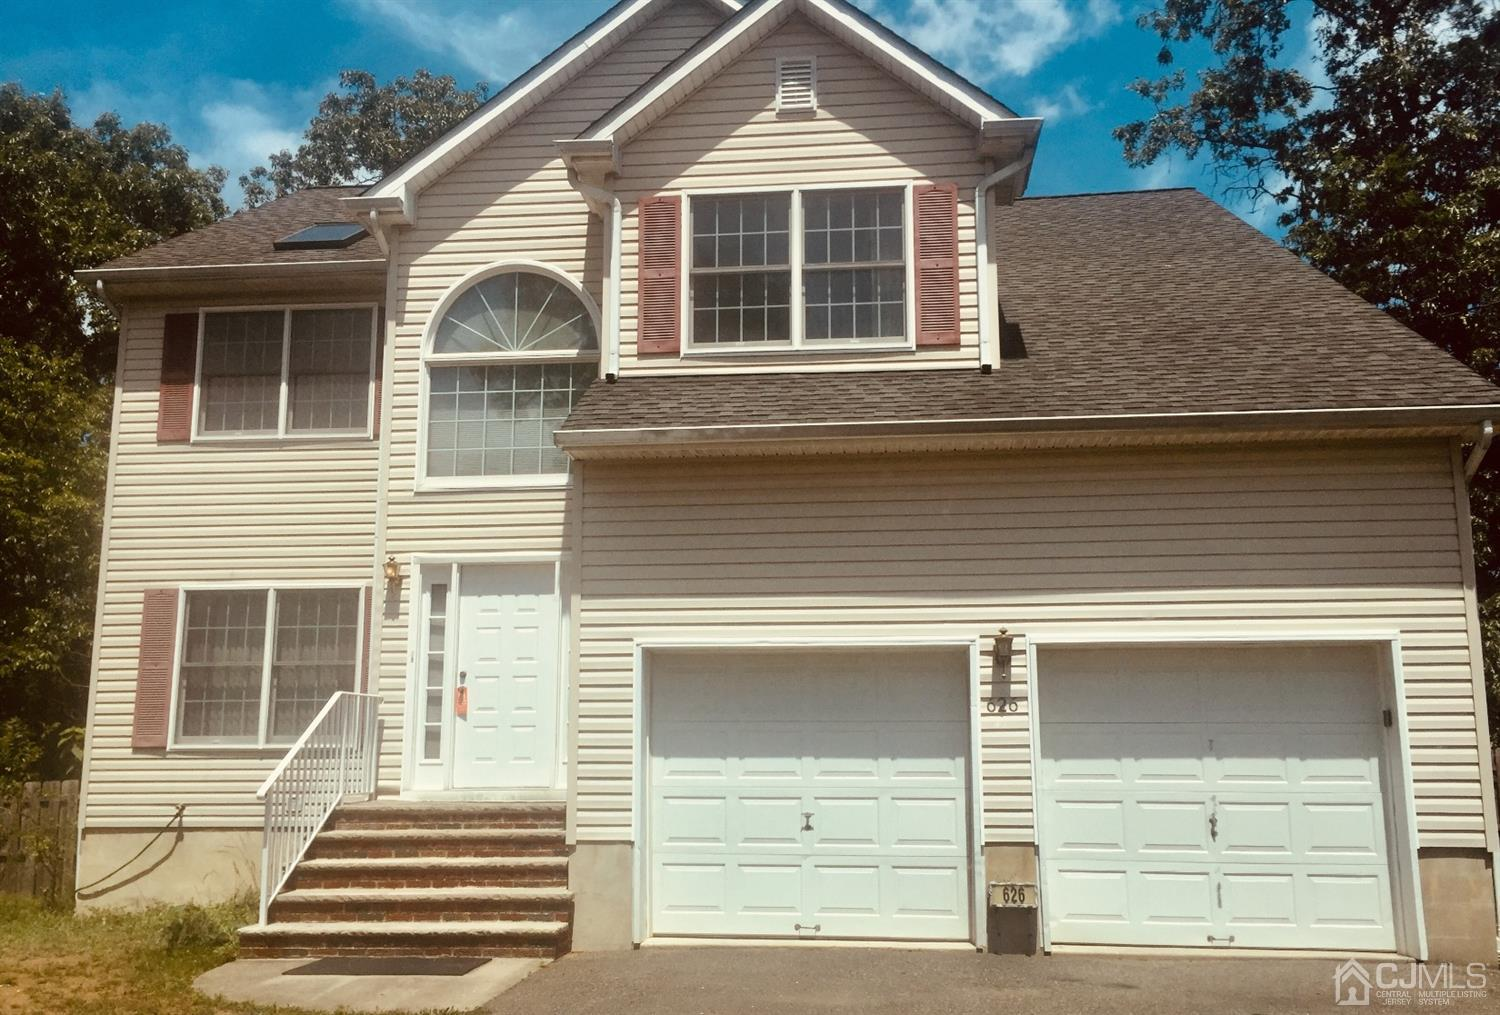 Property for sale at 626 Marlboro Road, Old Bridge,  New Jersey 08857